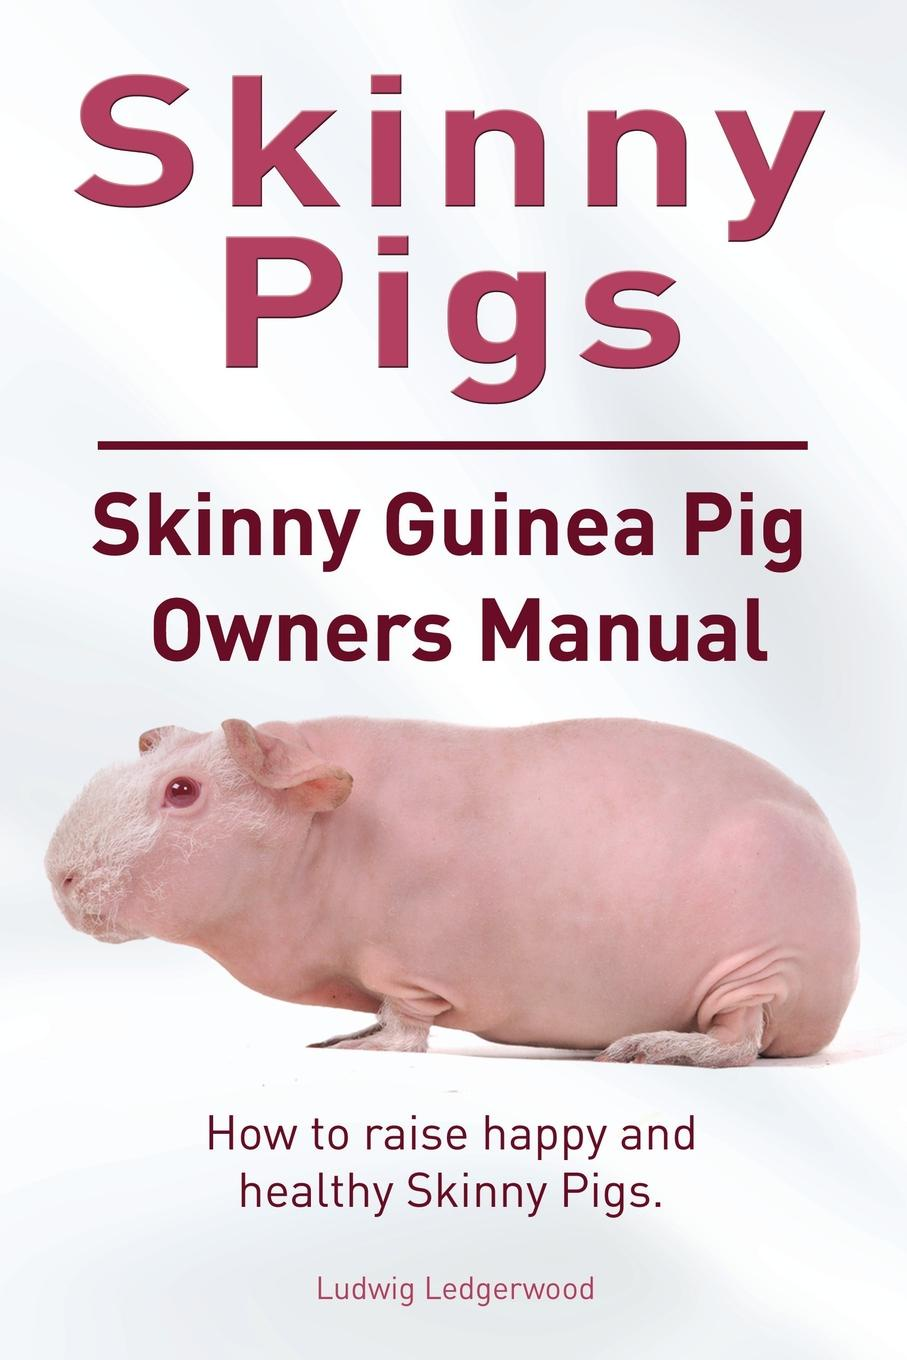 Ludwig Ledgerwood Skinny Pig. Skinny Guinea Pigs Owners Manual. How to raise happy and healthy Skinny Pigs. a guinea pig romeo